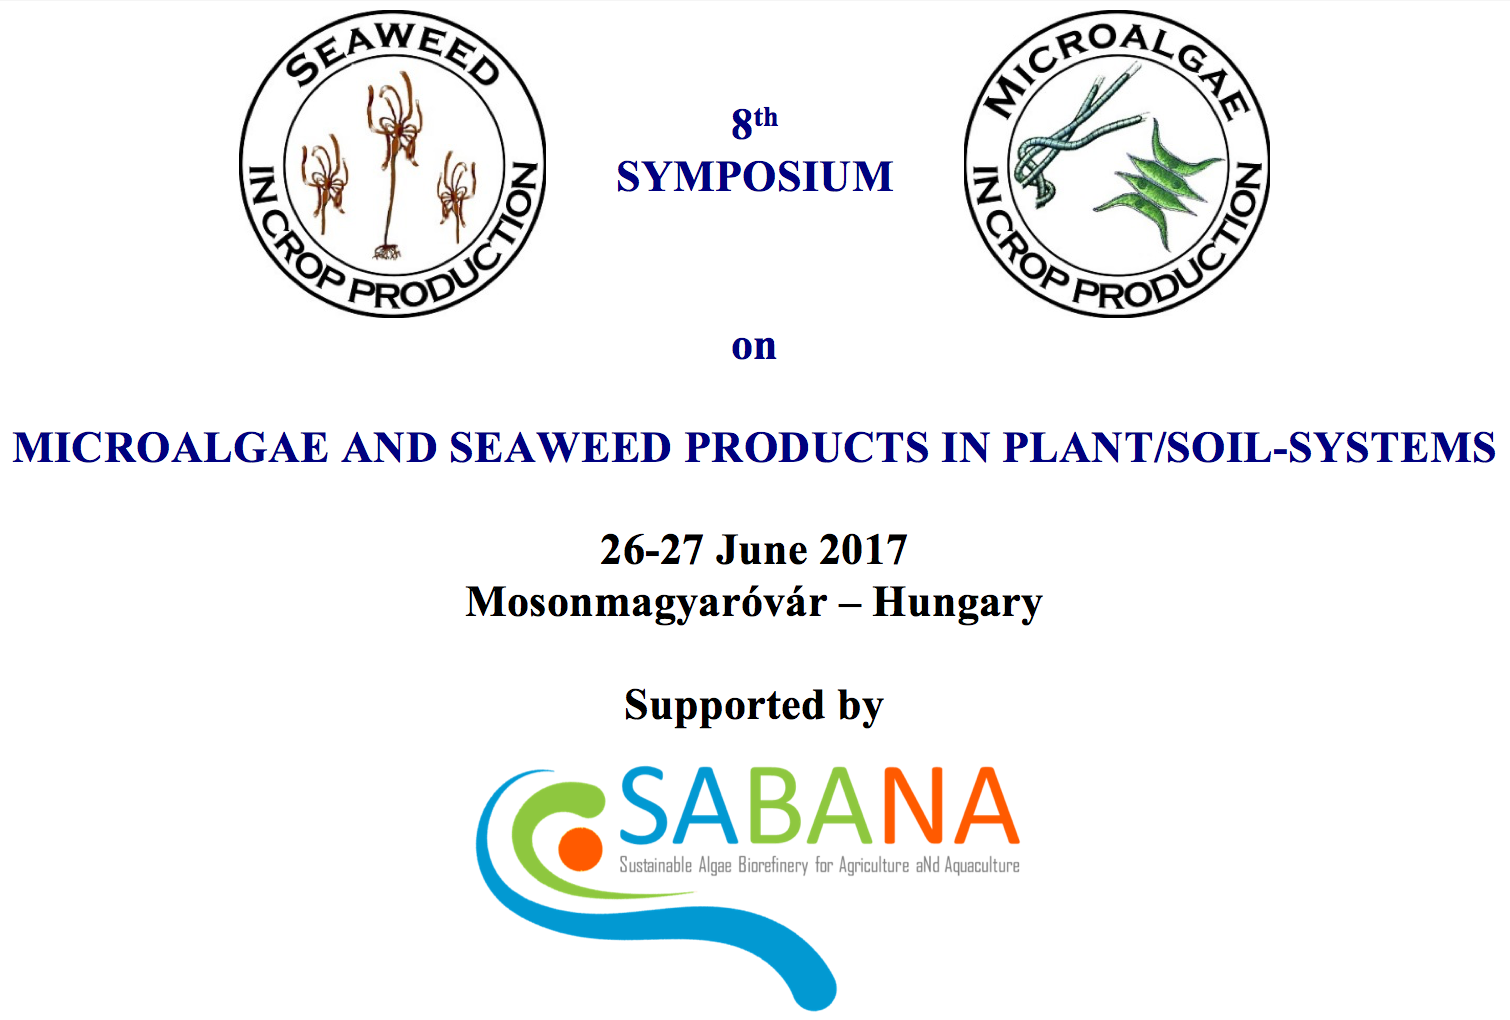 8th Symposium of Microalgae and Seaweed Products in Plant/Soil-Systems